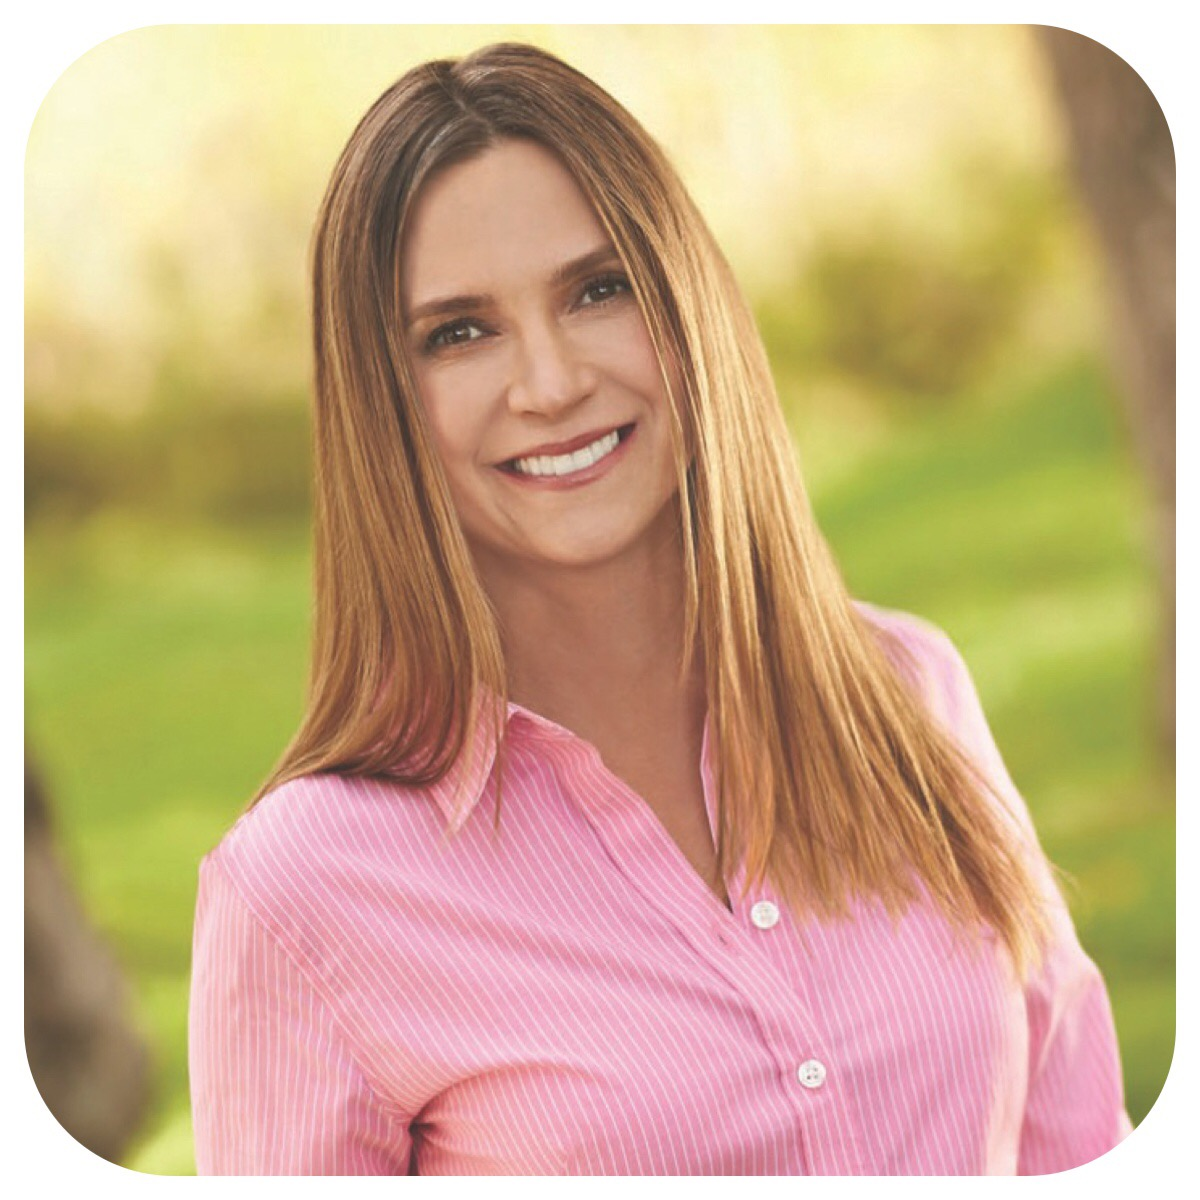 Healthy Living Now - Dr. Natasha Turner, ND - Contributors - Meet Our Team